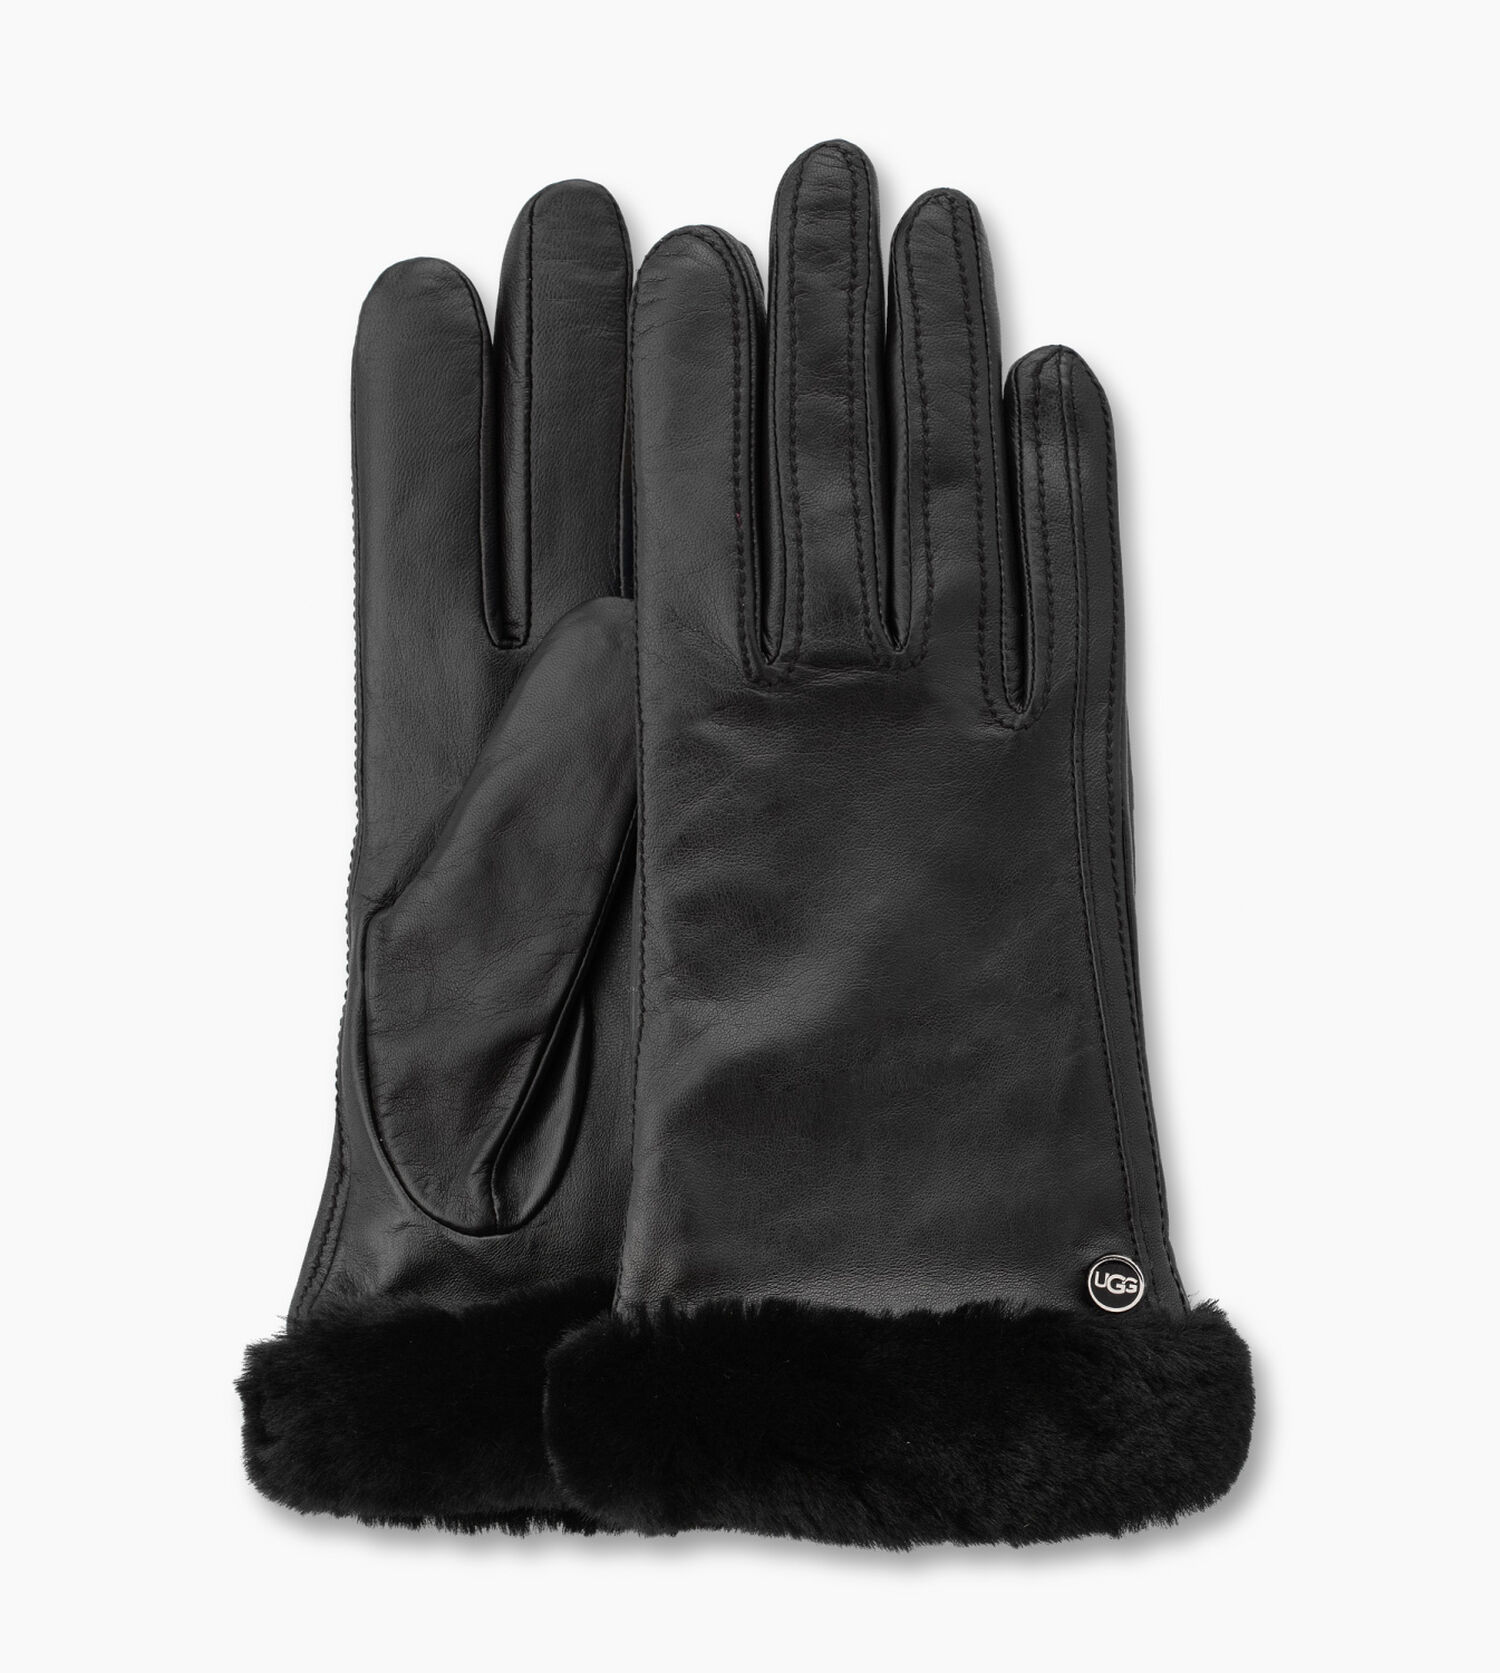 Womens leather gloves australia - Click To Zoom